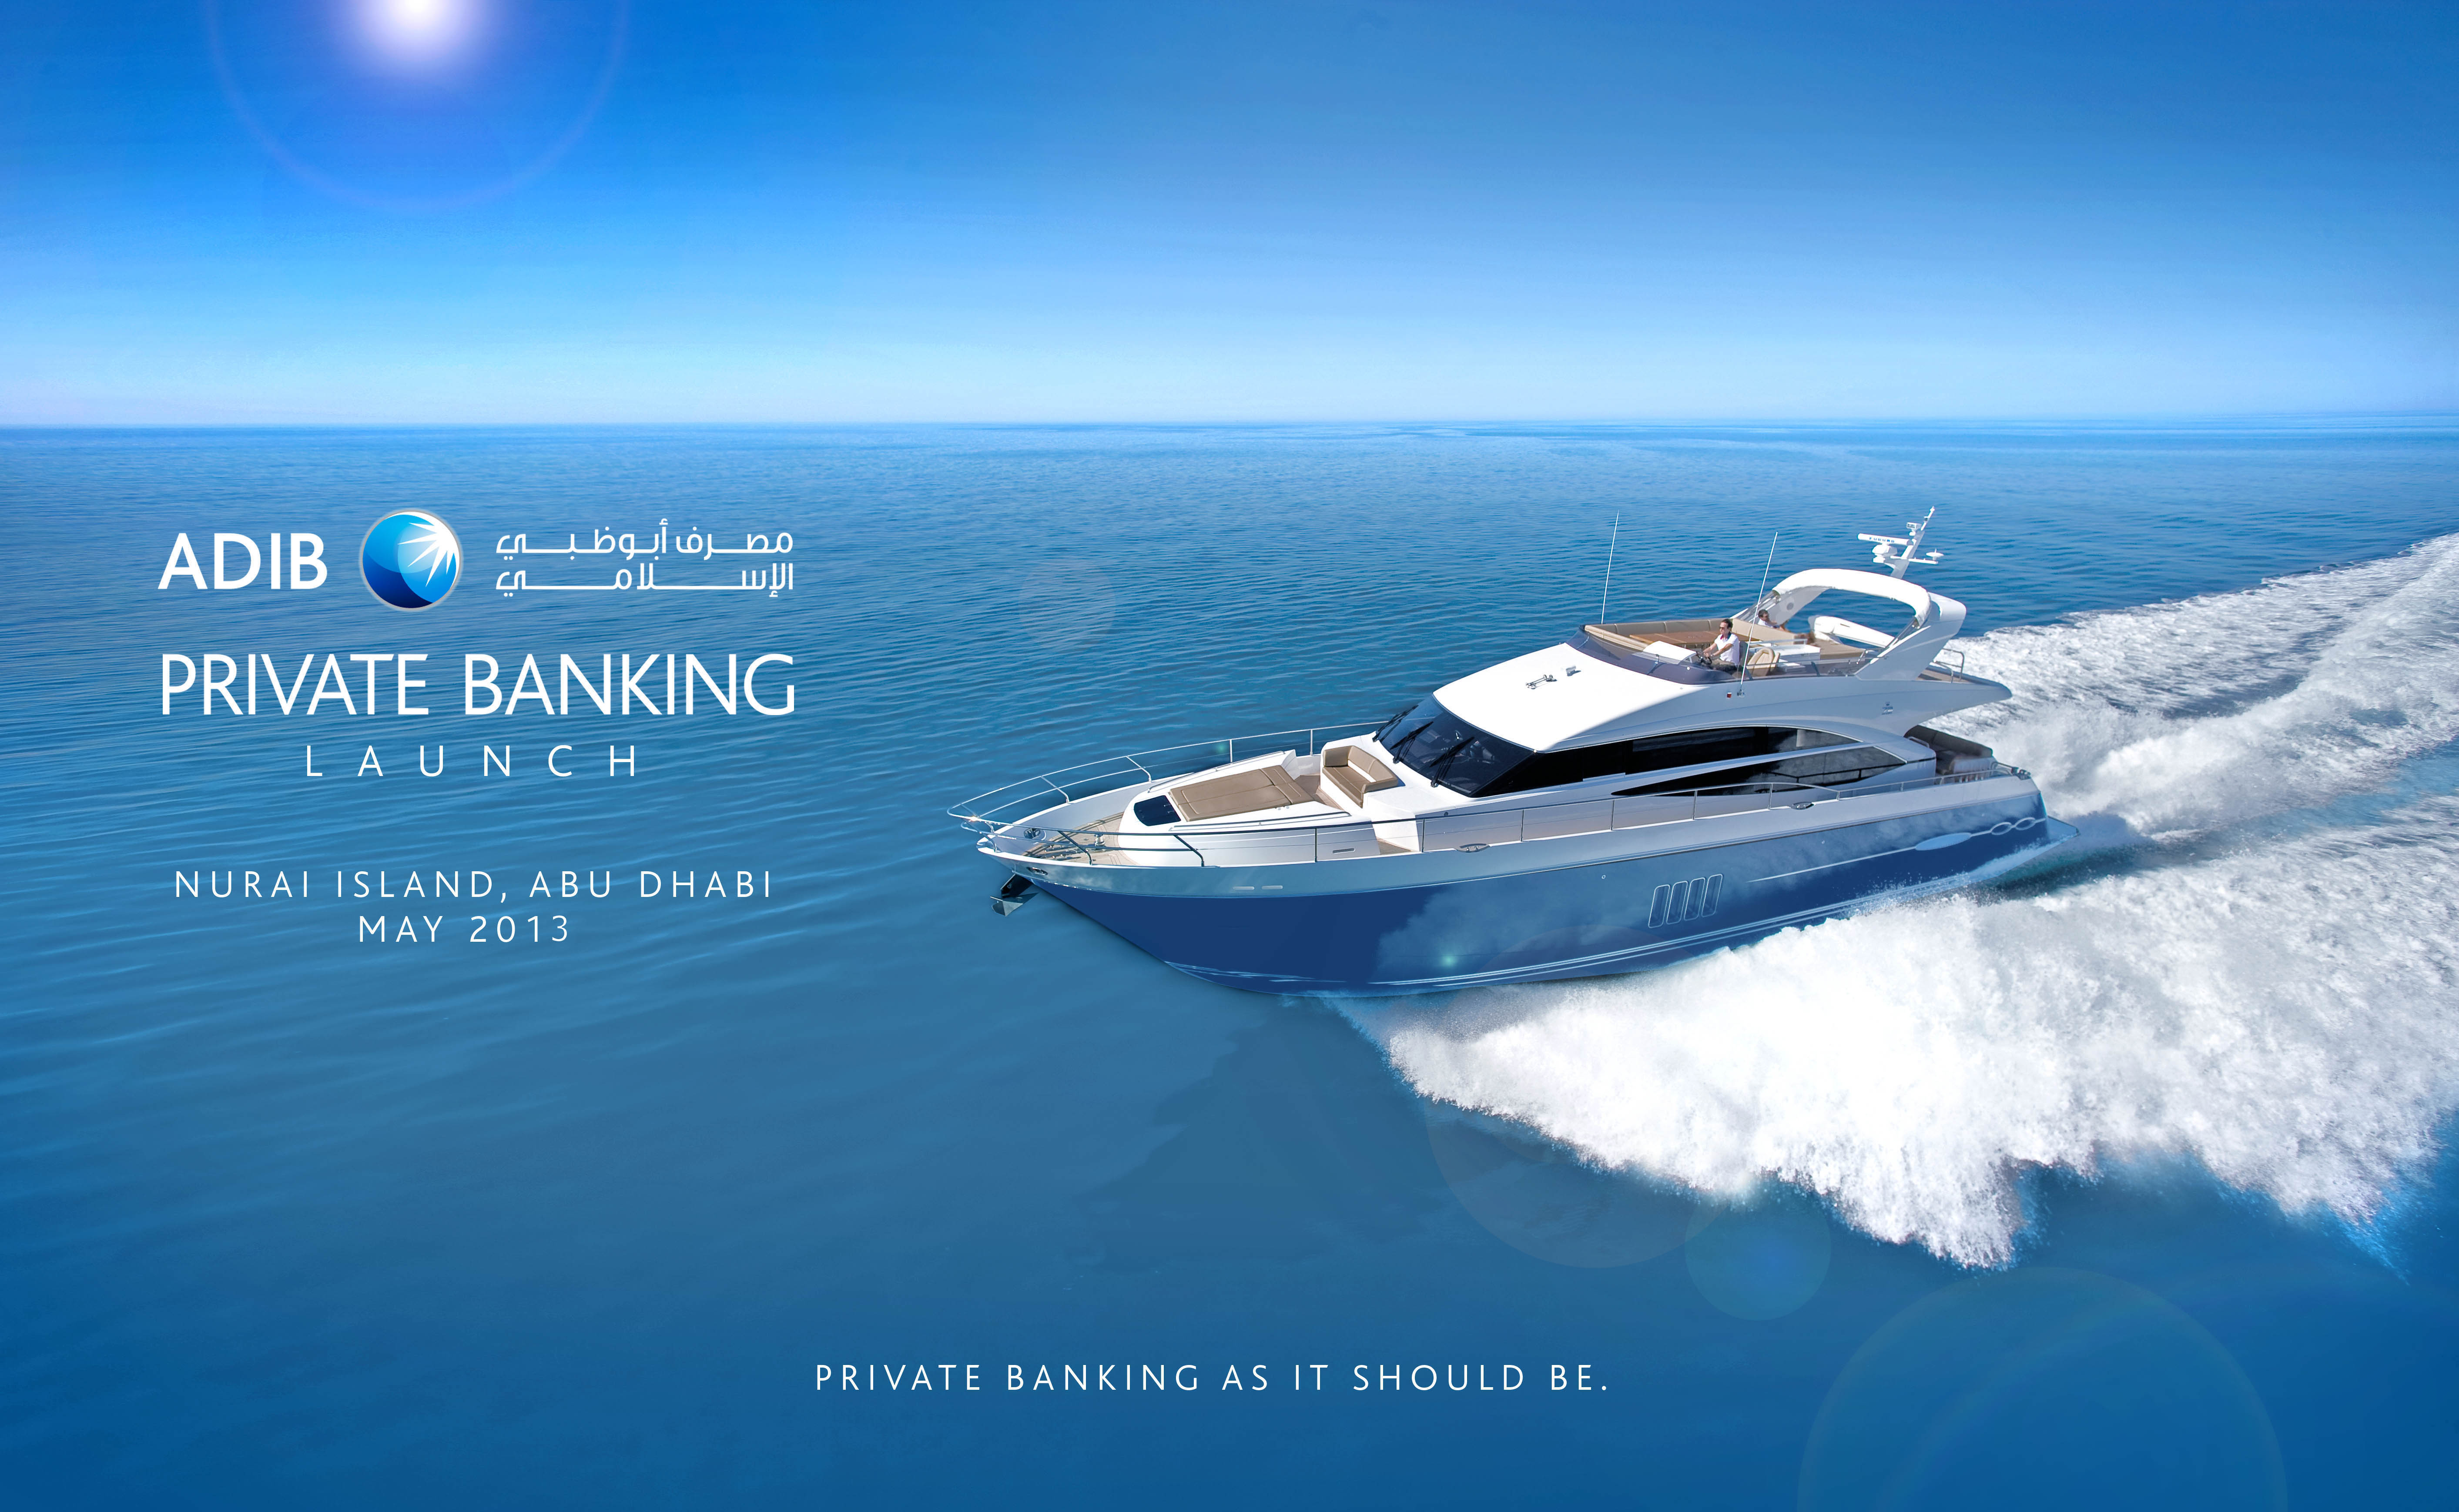 ADIB Private Banking